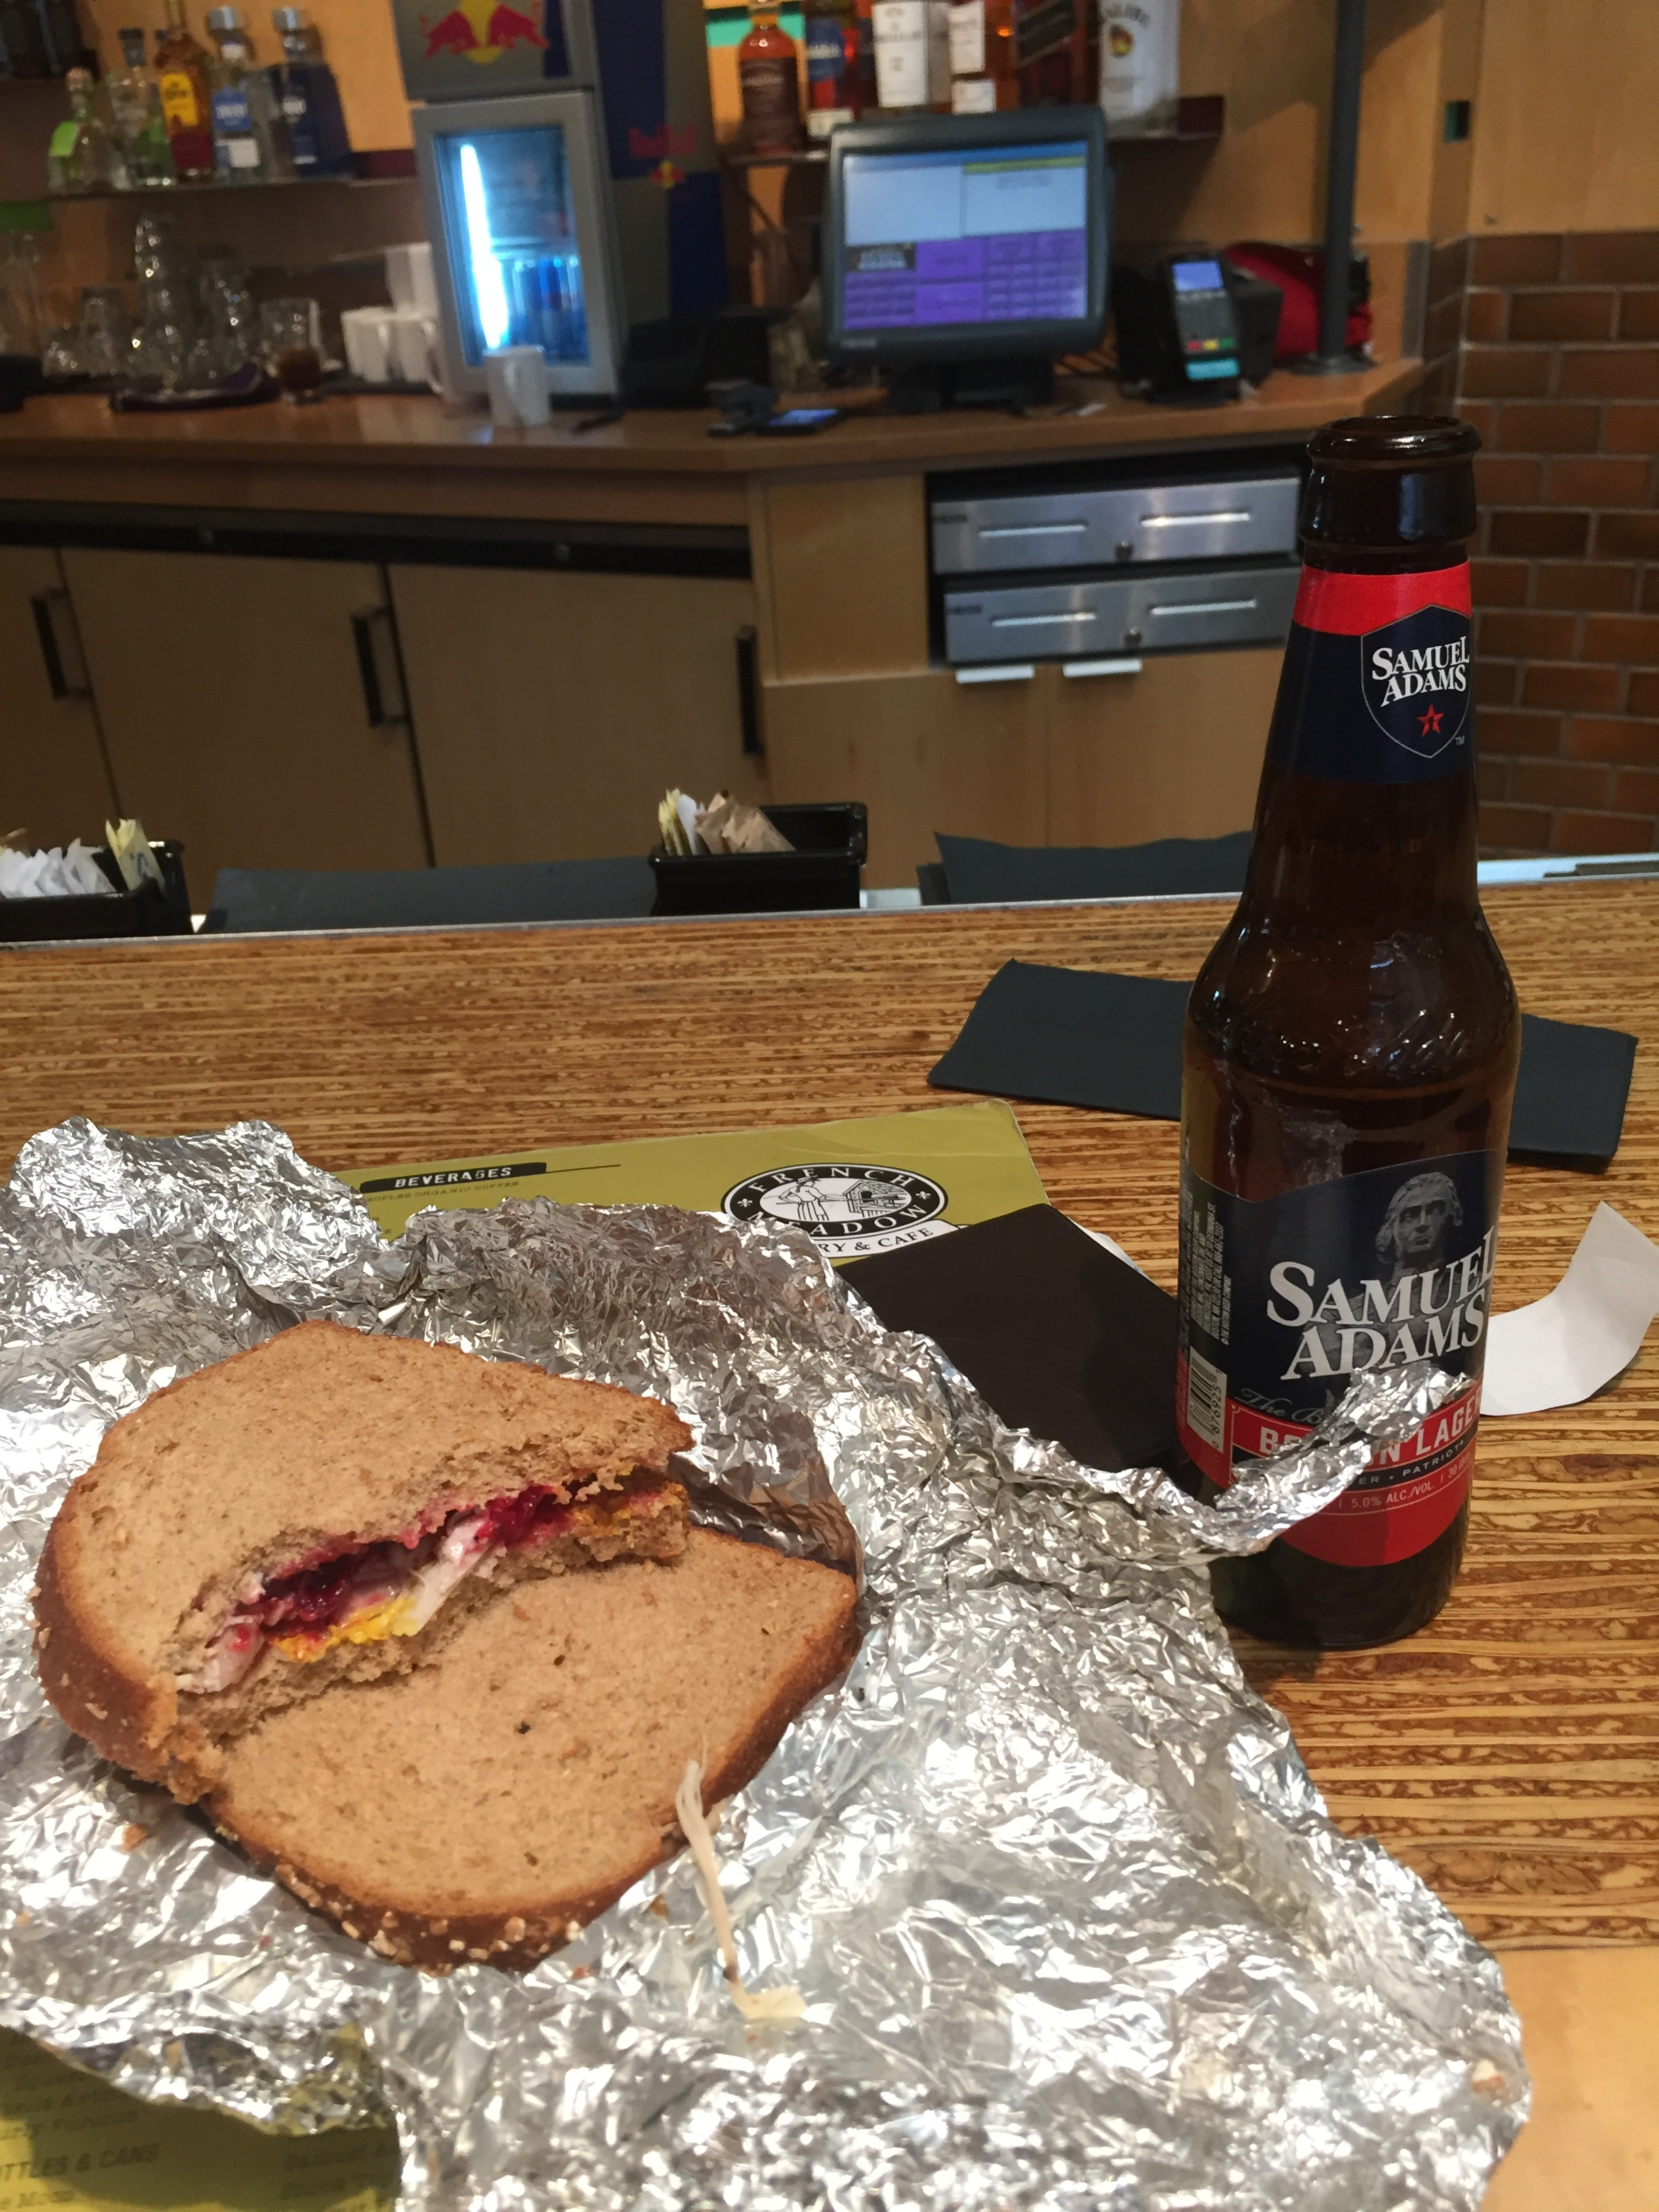 Text picture from John, my brother-in-law, who was visiting from Miami Beach. Turkey sammy with cranberry sauce and a beer at the airport.  Then another text the following day telling me he had his second sandwich and he loves leftovers! Yay!